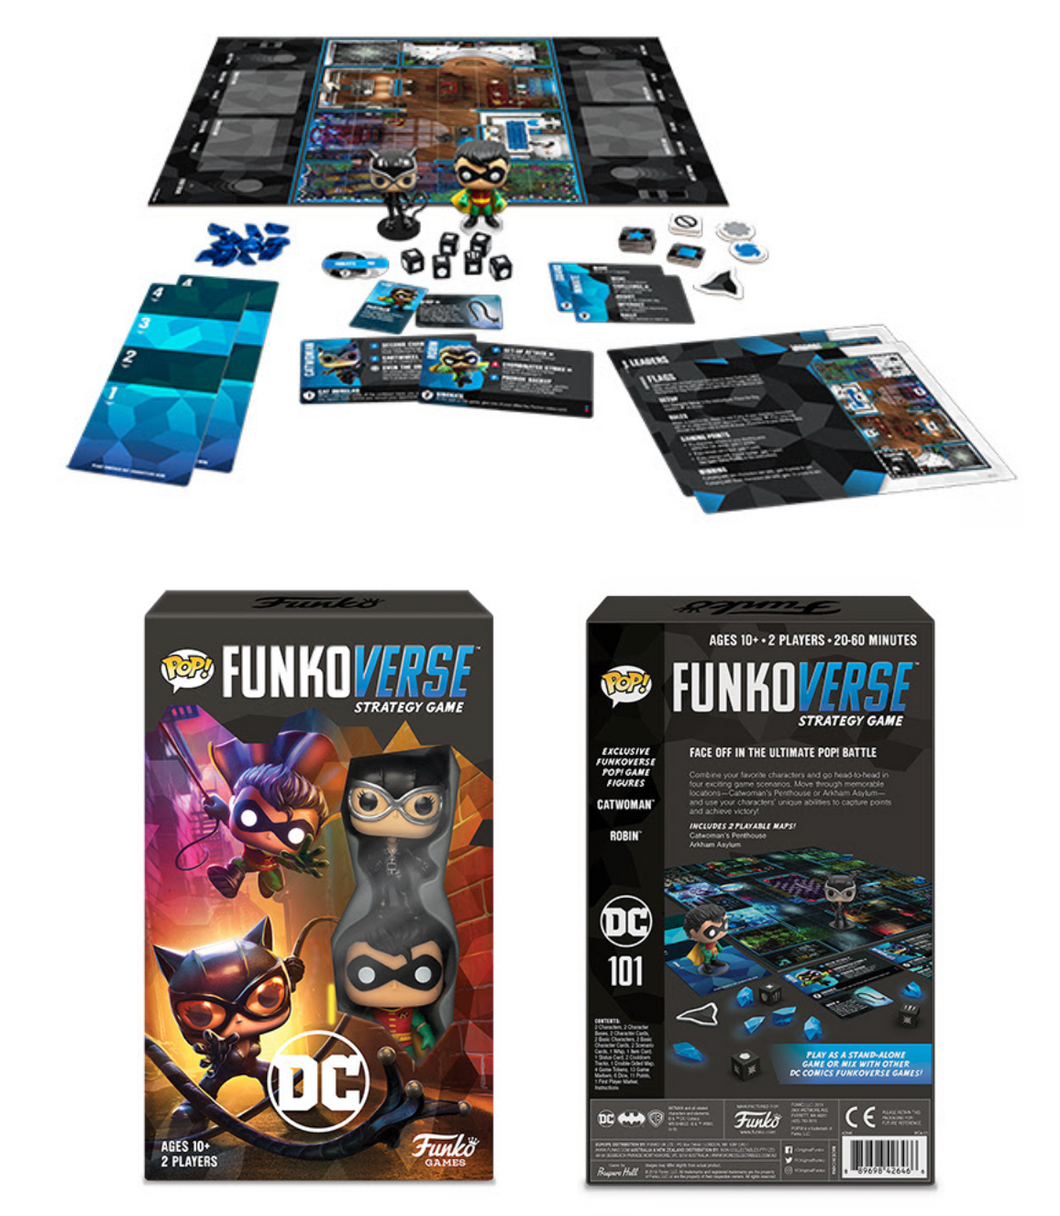 Funkoverse: Strategy Game - DC 101 (Expansion Game)